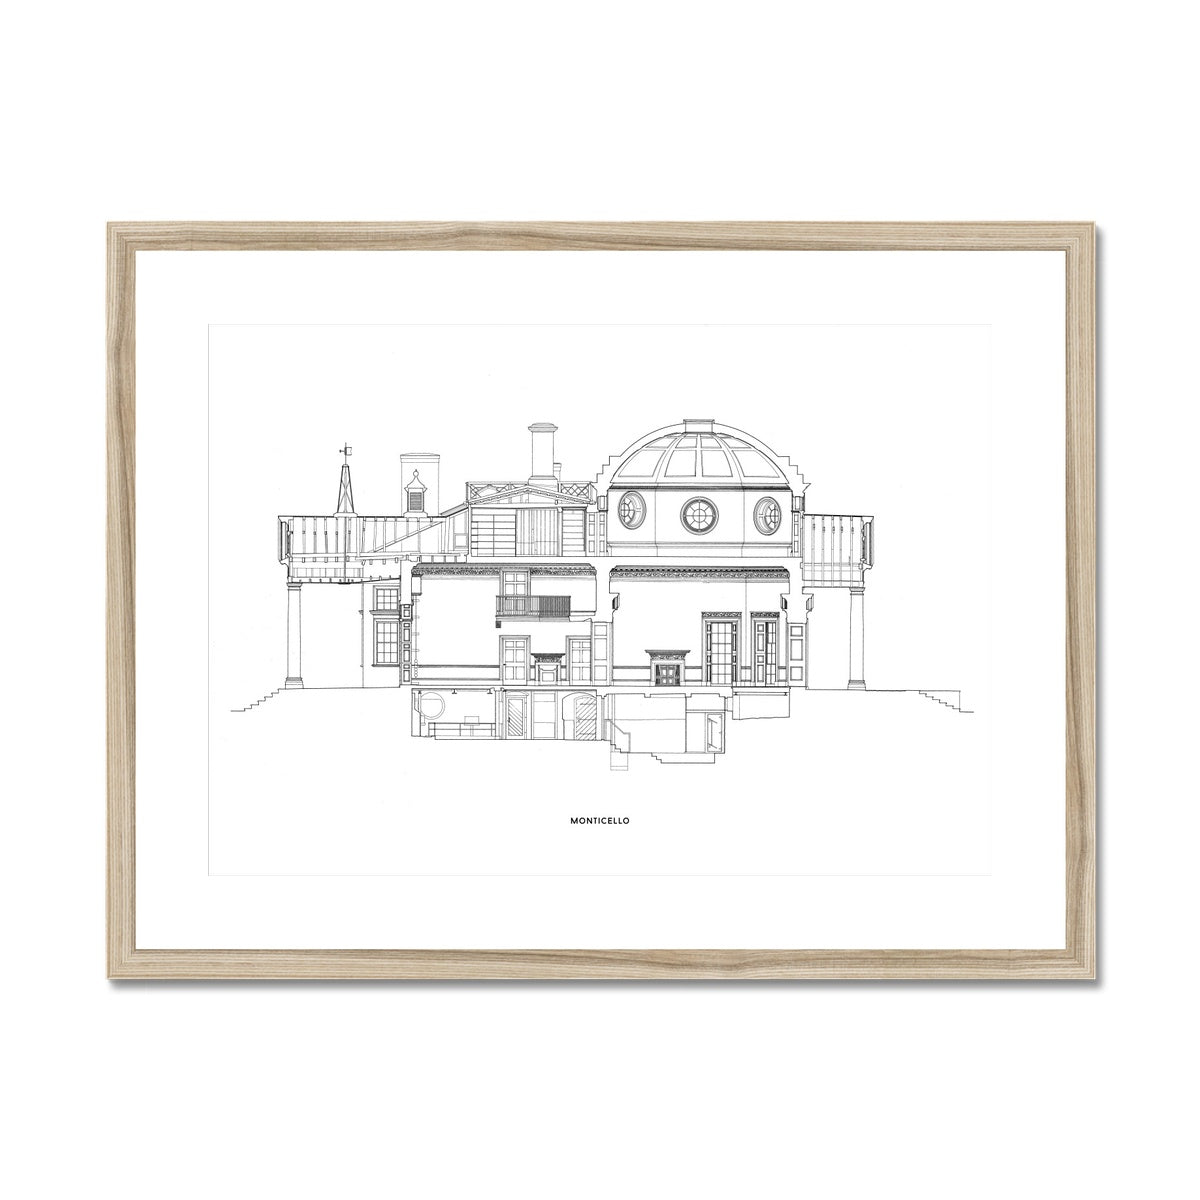 Monticello - North Elevation Cross Section - White -  Framed & Mounted Print